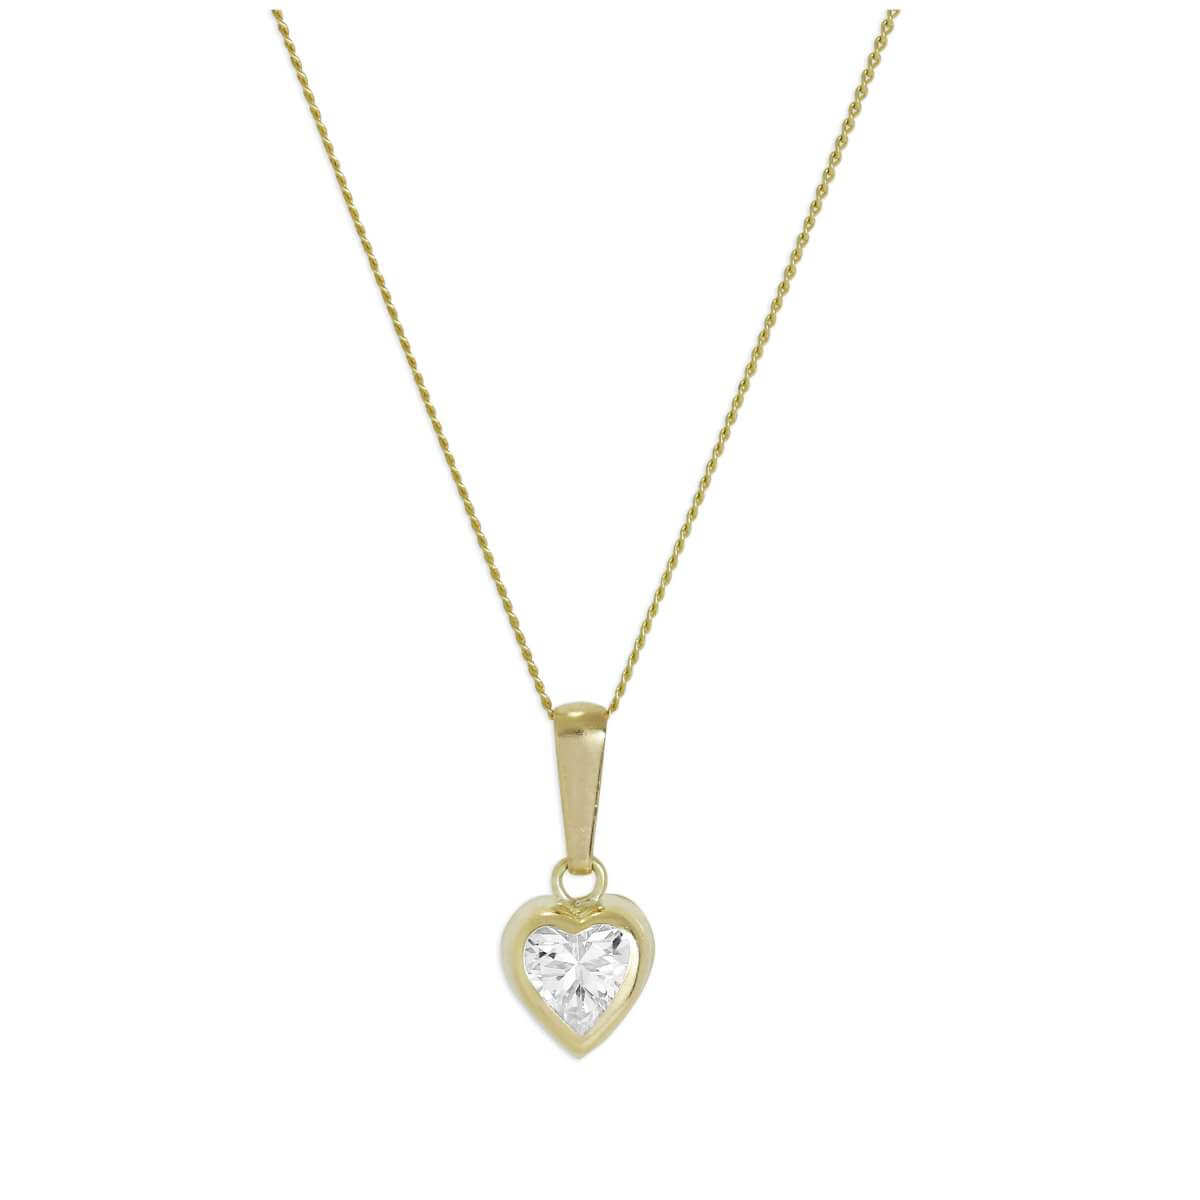 9ct Yellow Gold & Clear CZ Crystal 5mm Rubover Heart Pendant on Chain 16 - 20 Inches